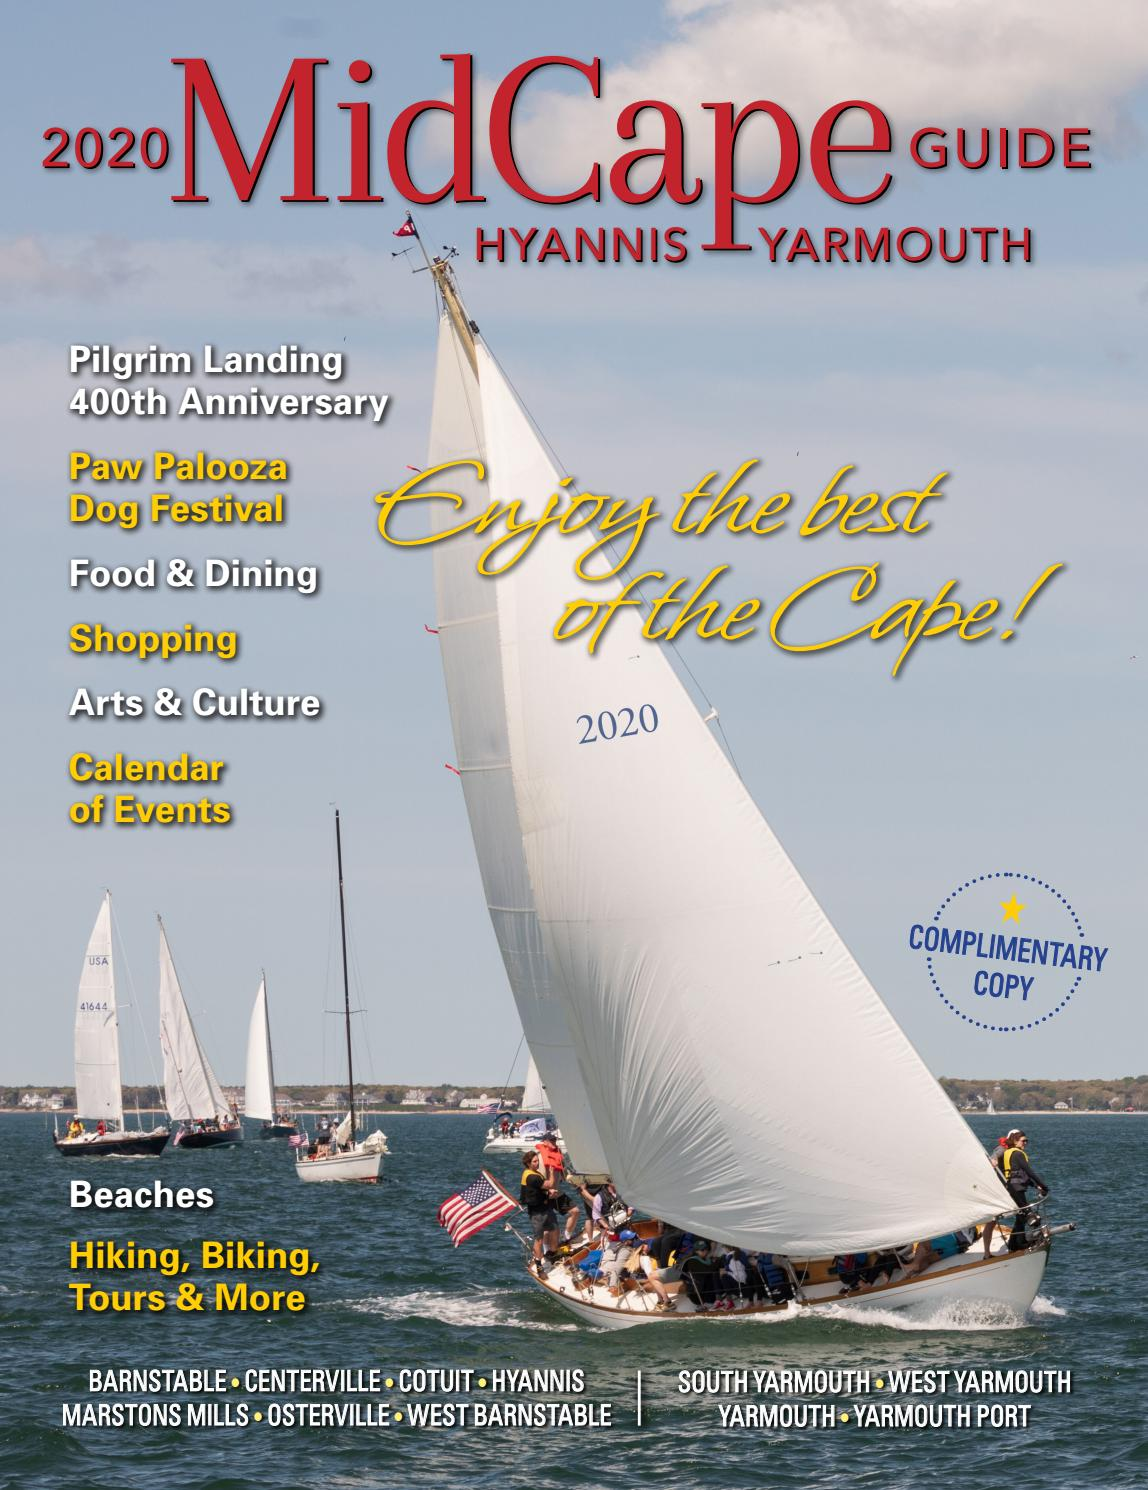 Yarmouthport Ma Christmas Stroll 2020 MidCape Guide 2020 by Alison Caron Design   issuu